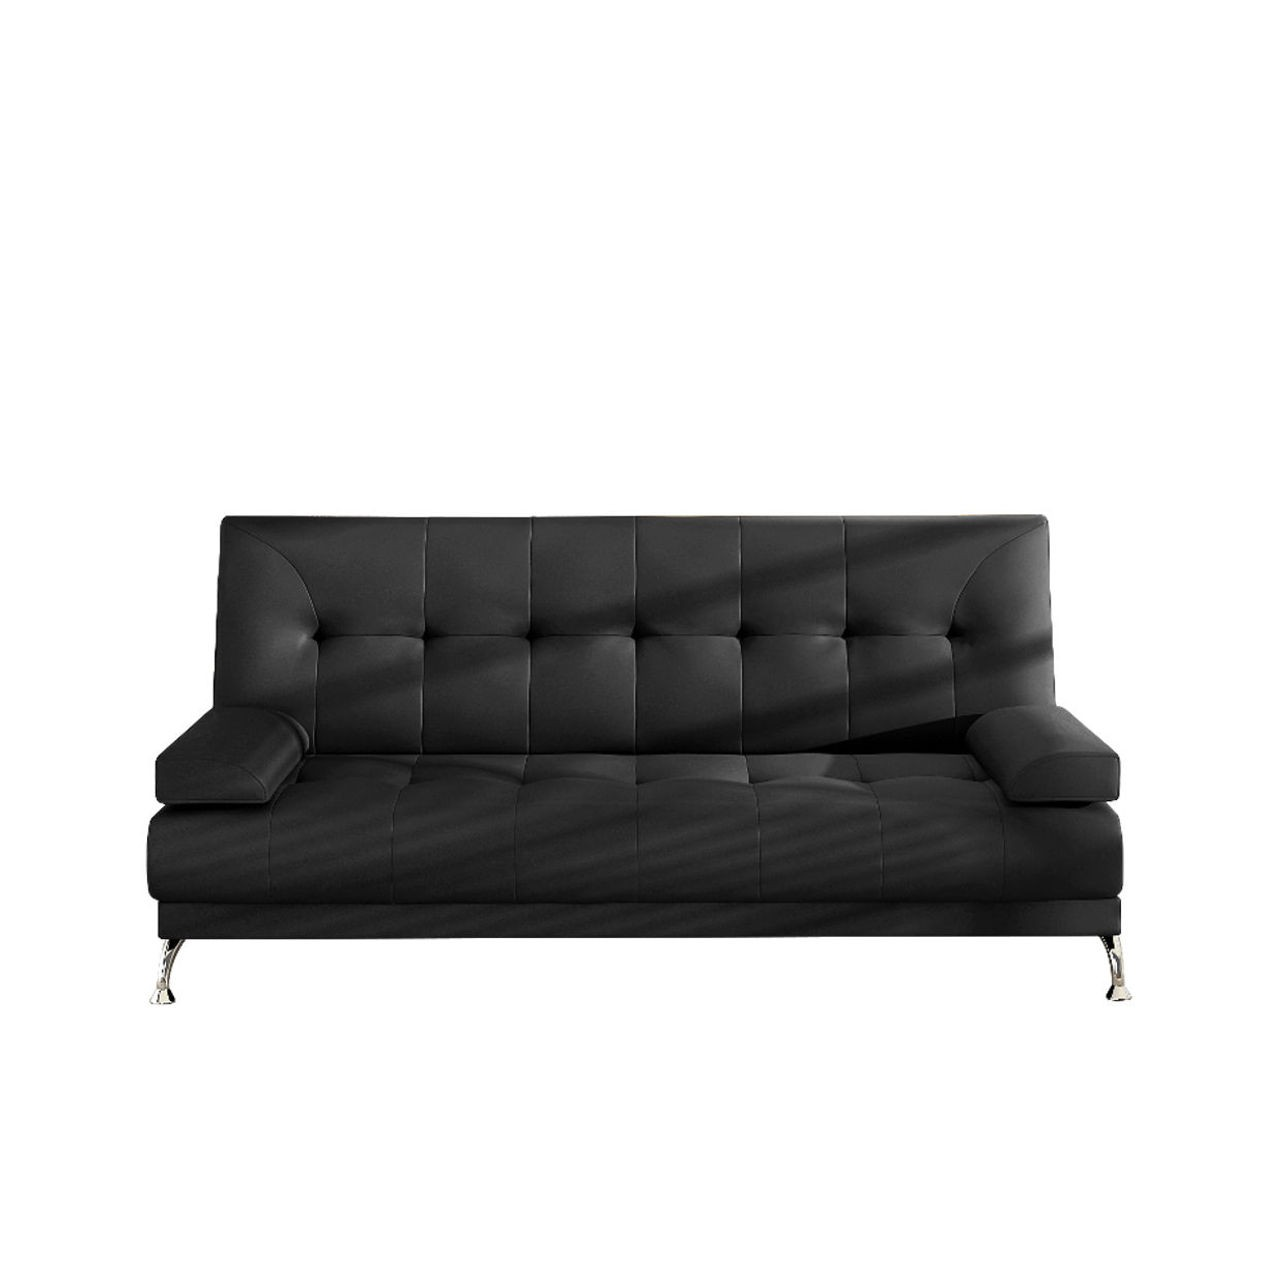 sofa ari mit schlaffunktion mirjan24. Black Bedroom Furniture Sets. Home Design Ideas